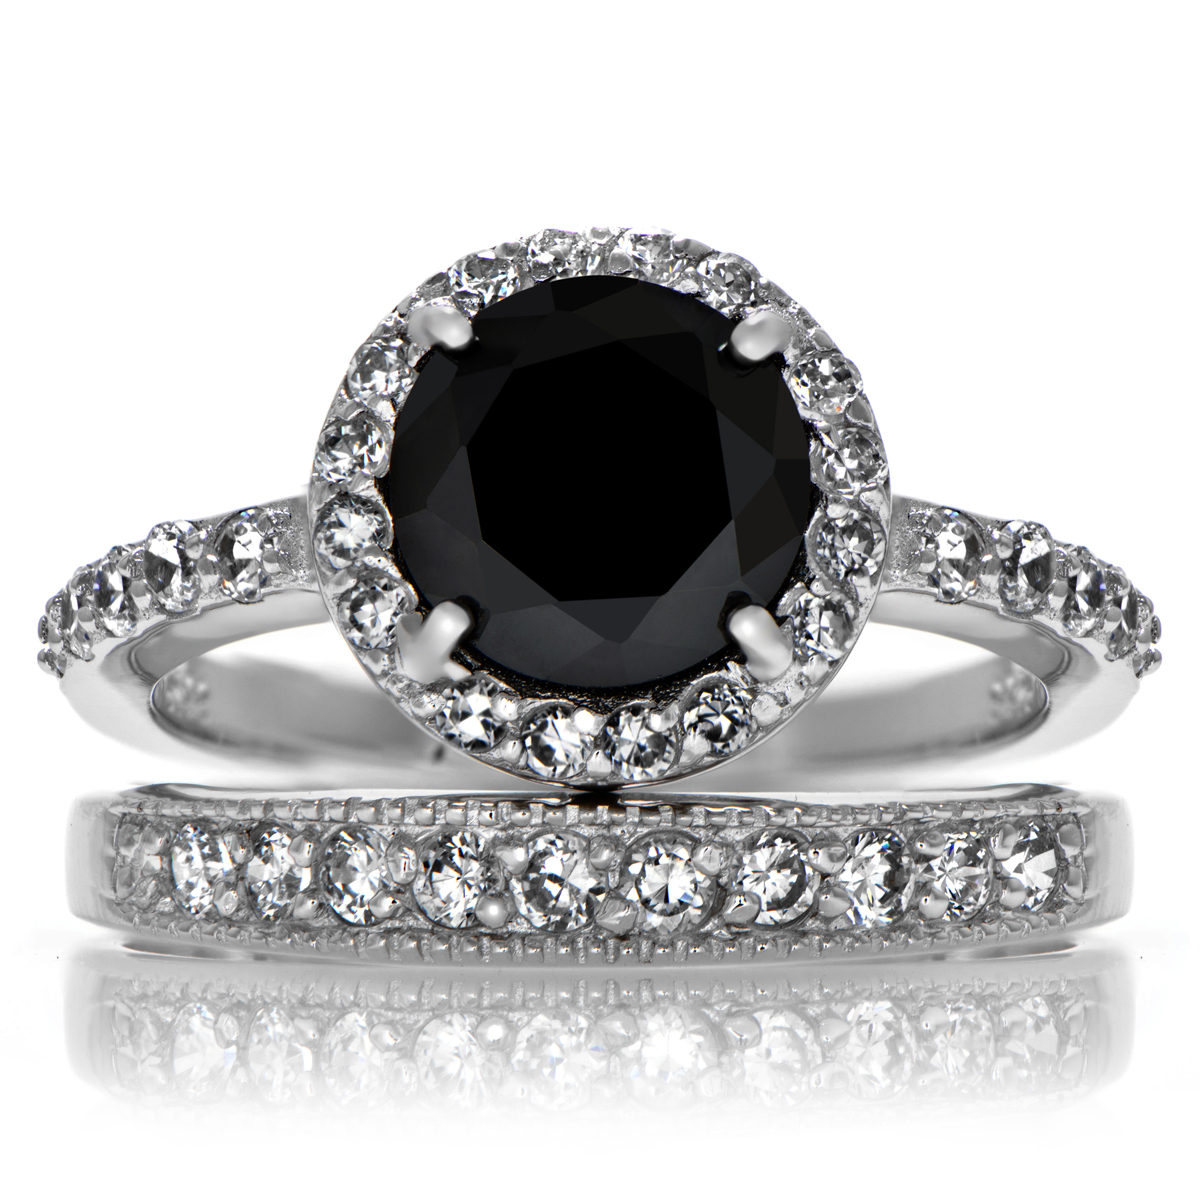 carriebundle black wedding ring sets Carrie s Black CZ Ring Set Roll Off Image to Close Zoom Window